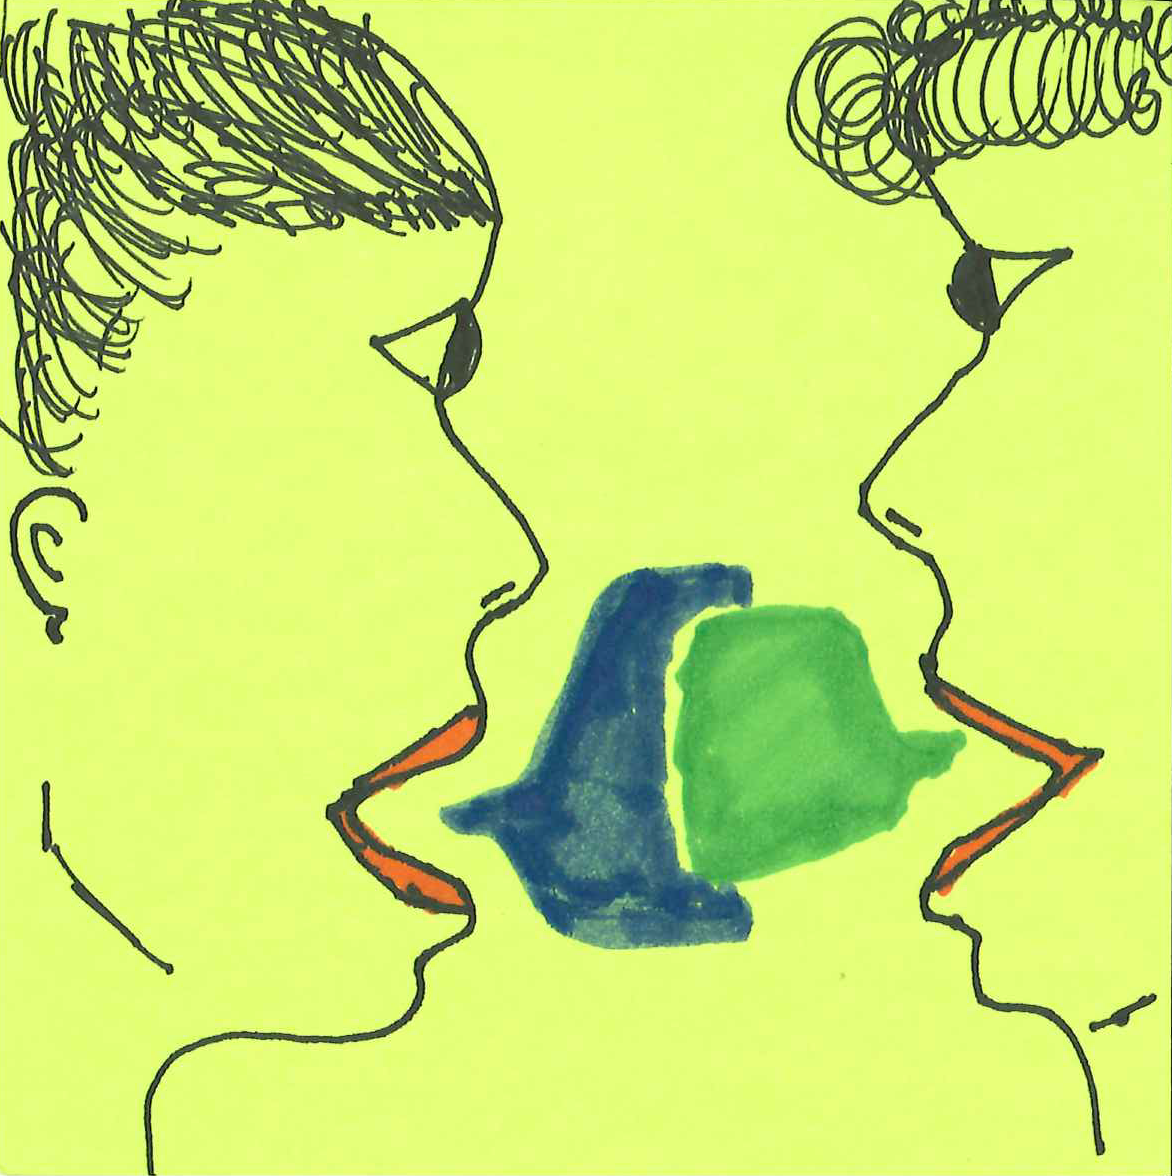 File:People talking.png - Wikimedia Commons